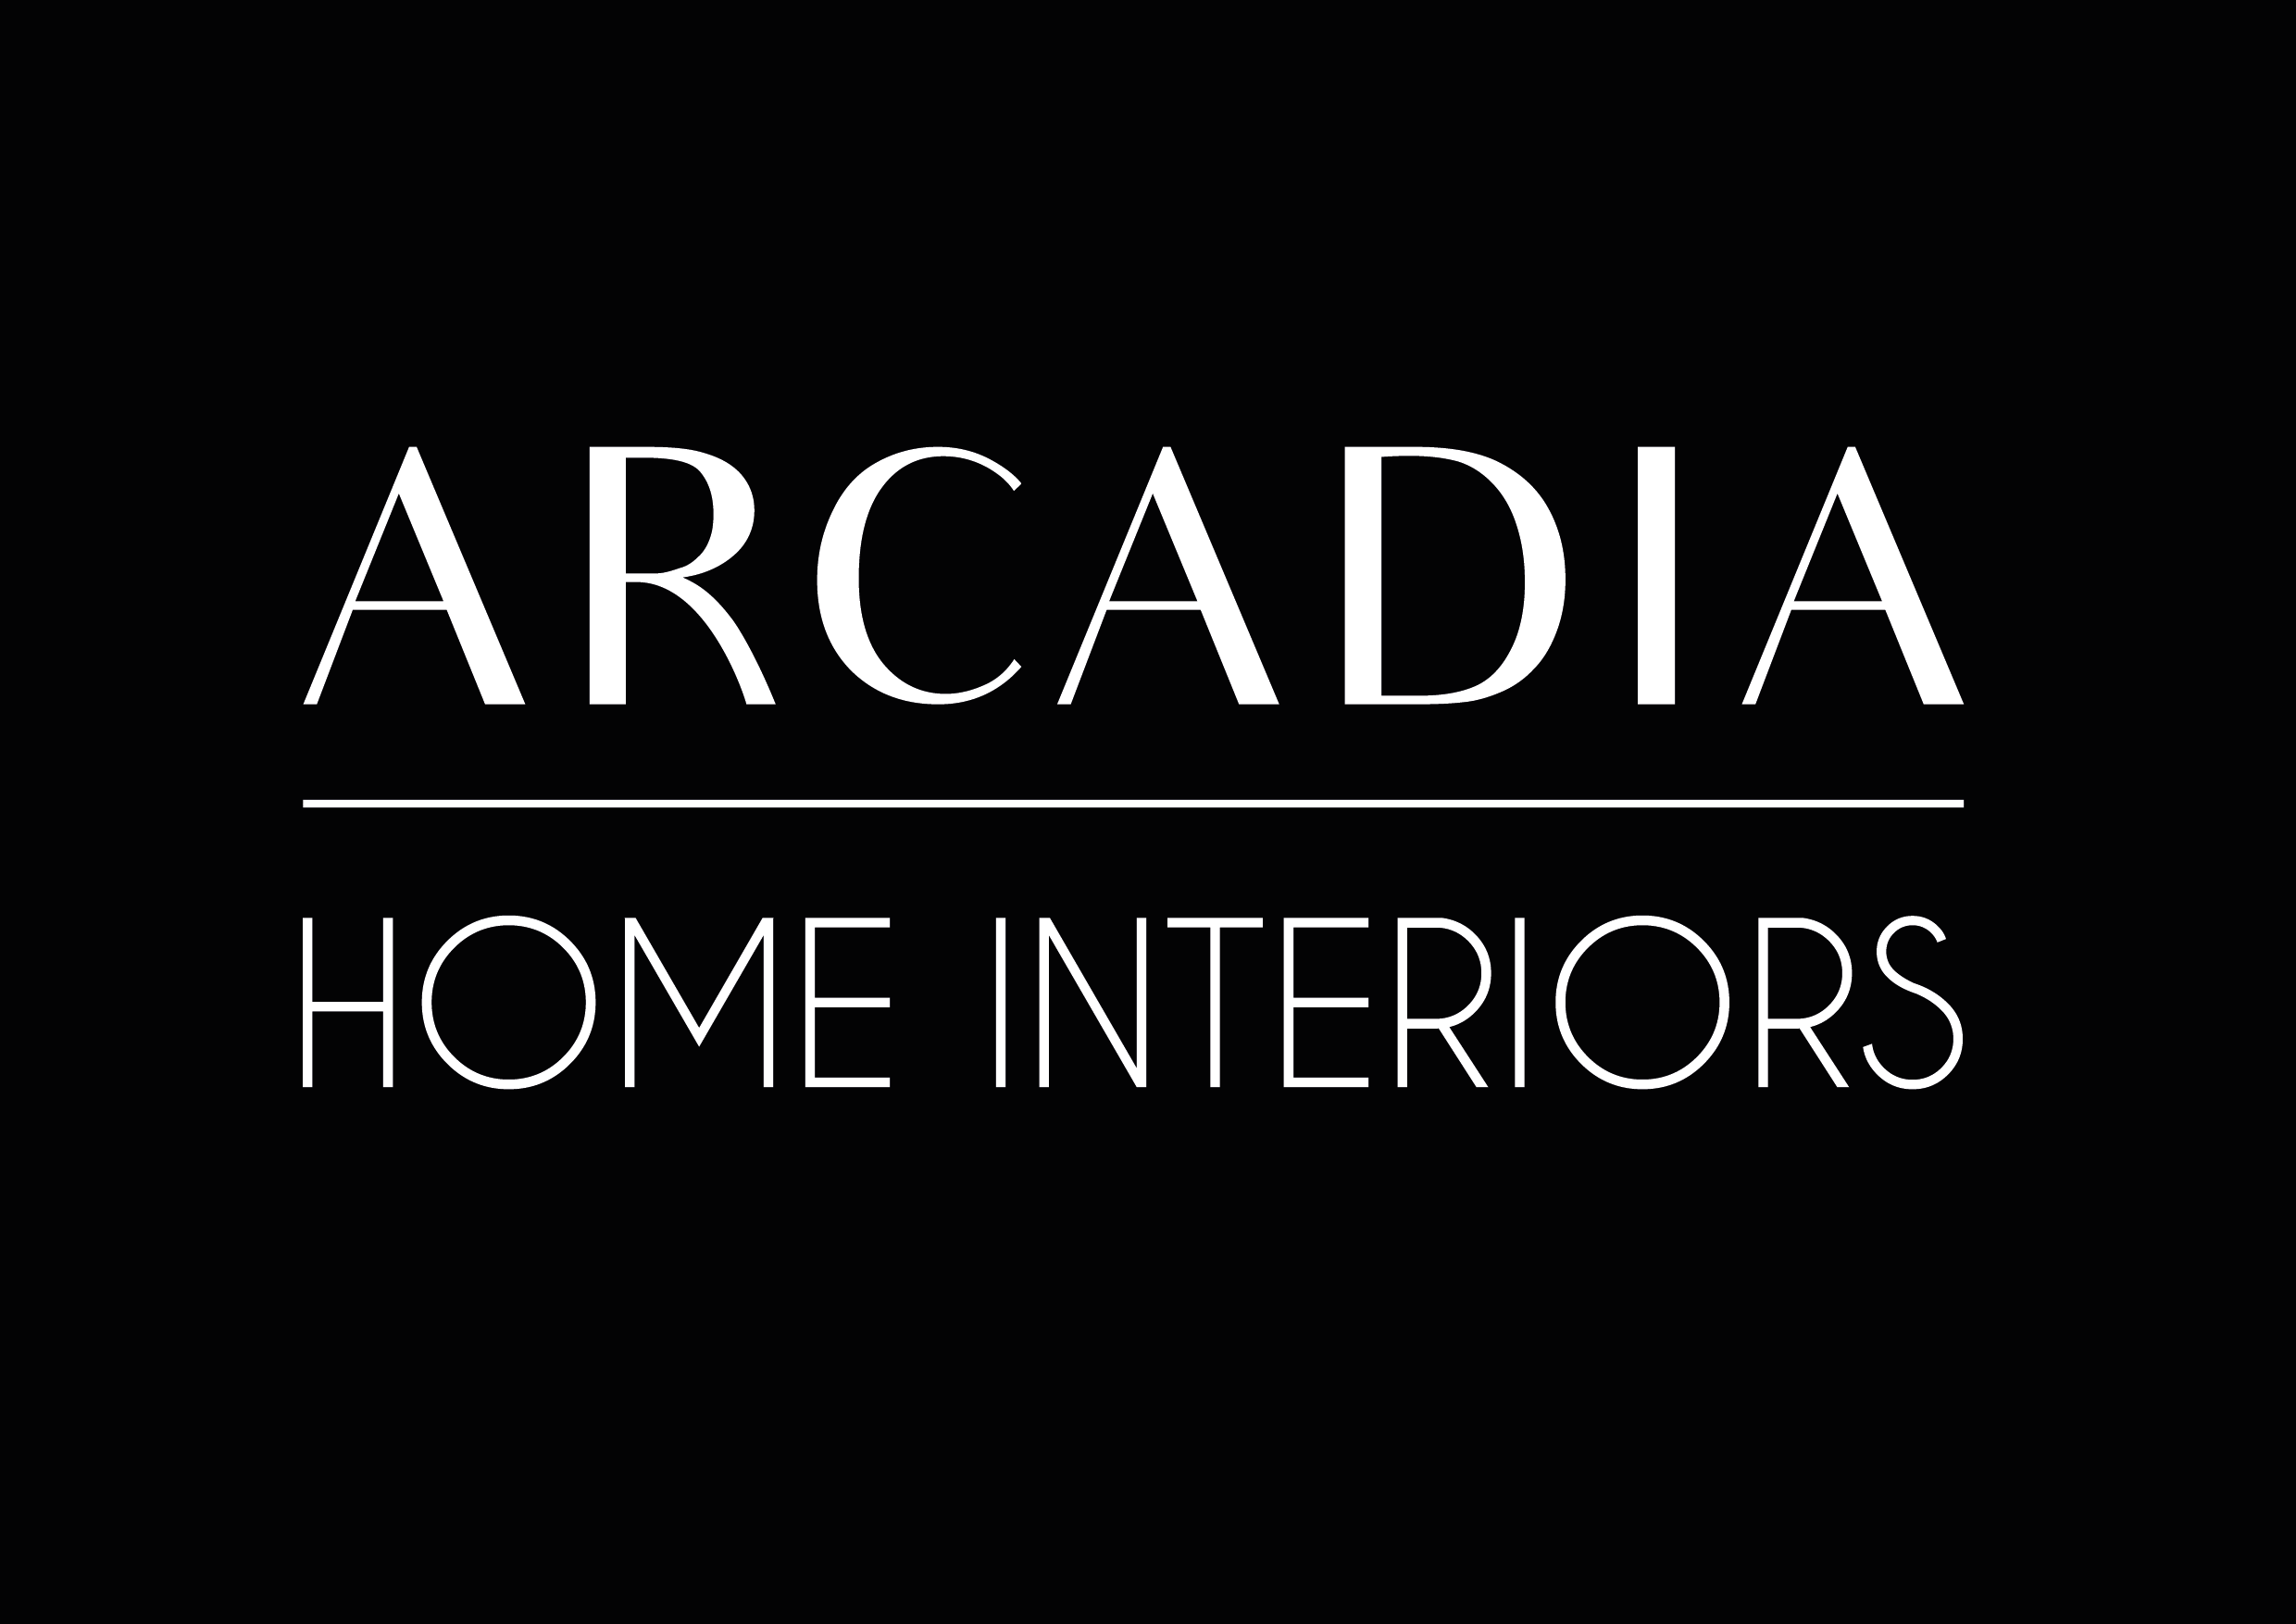 Link to https://www.arcadiahomeinteriors.co.uk/